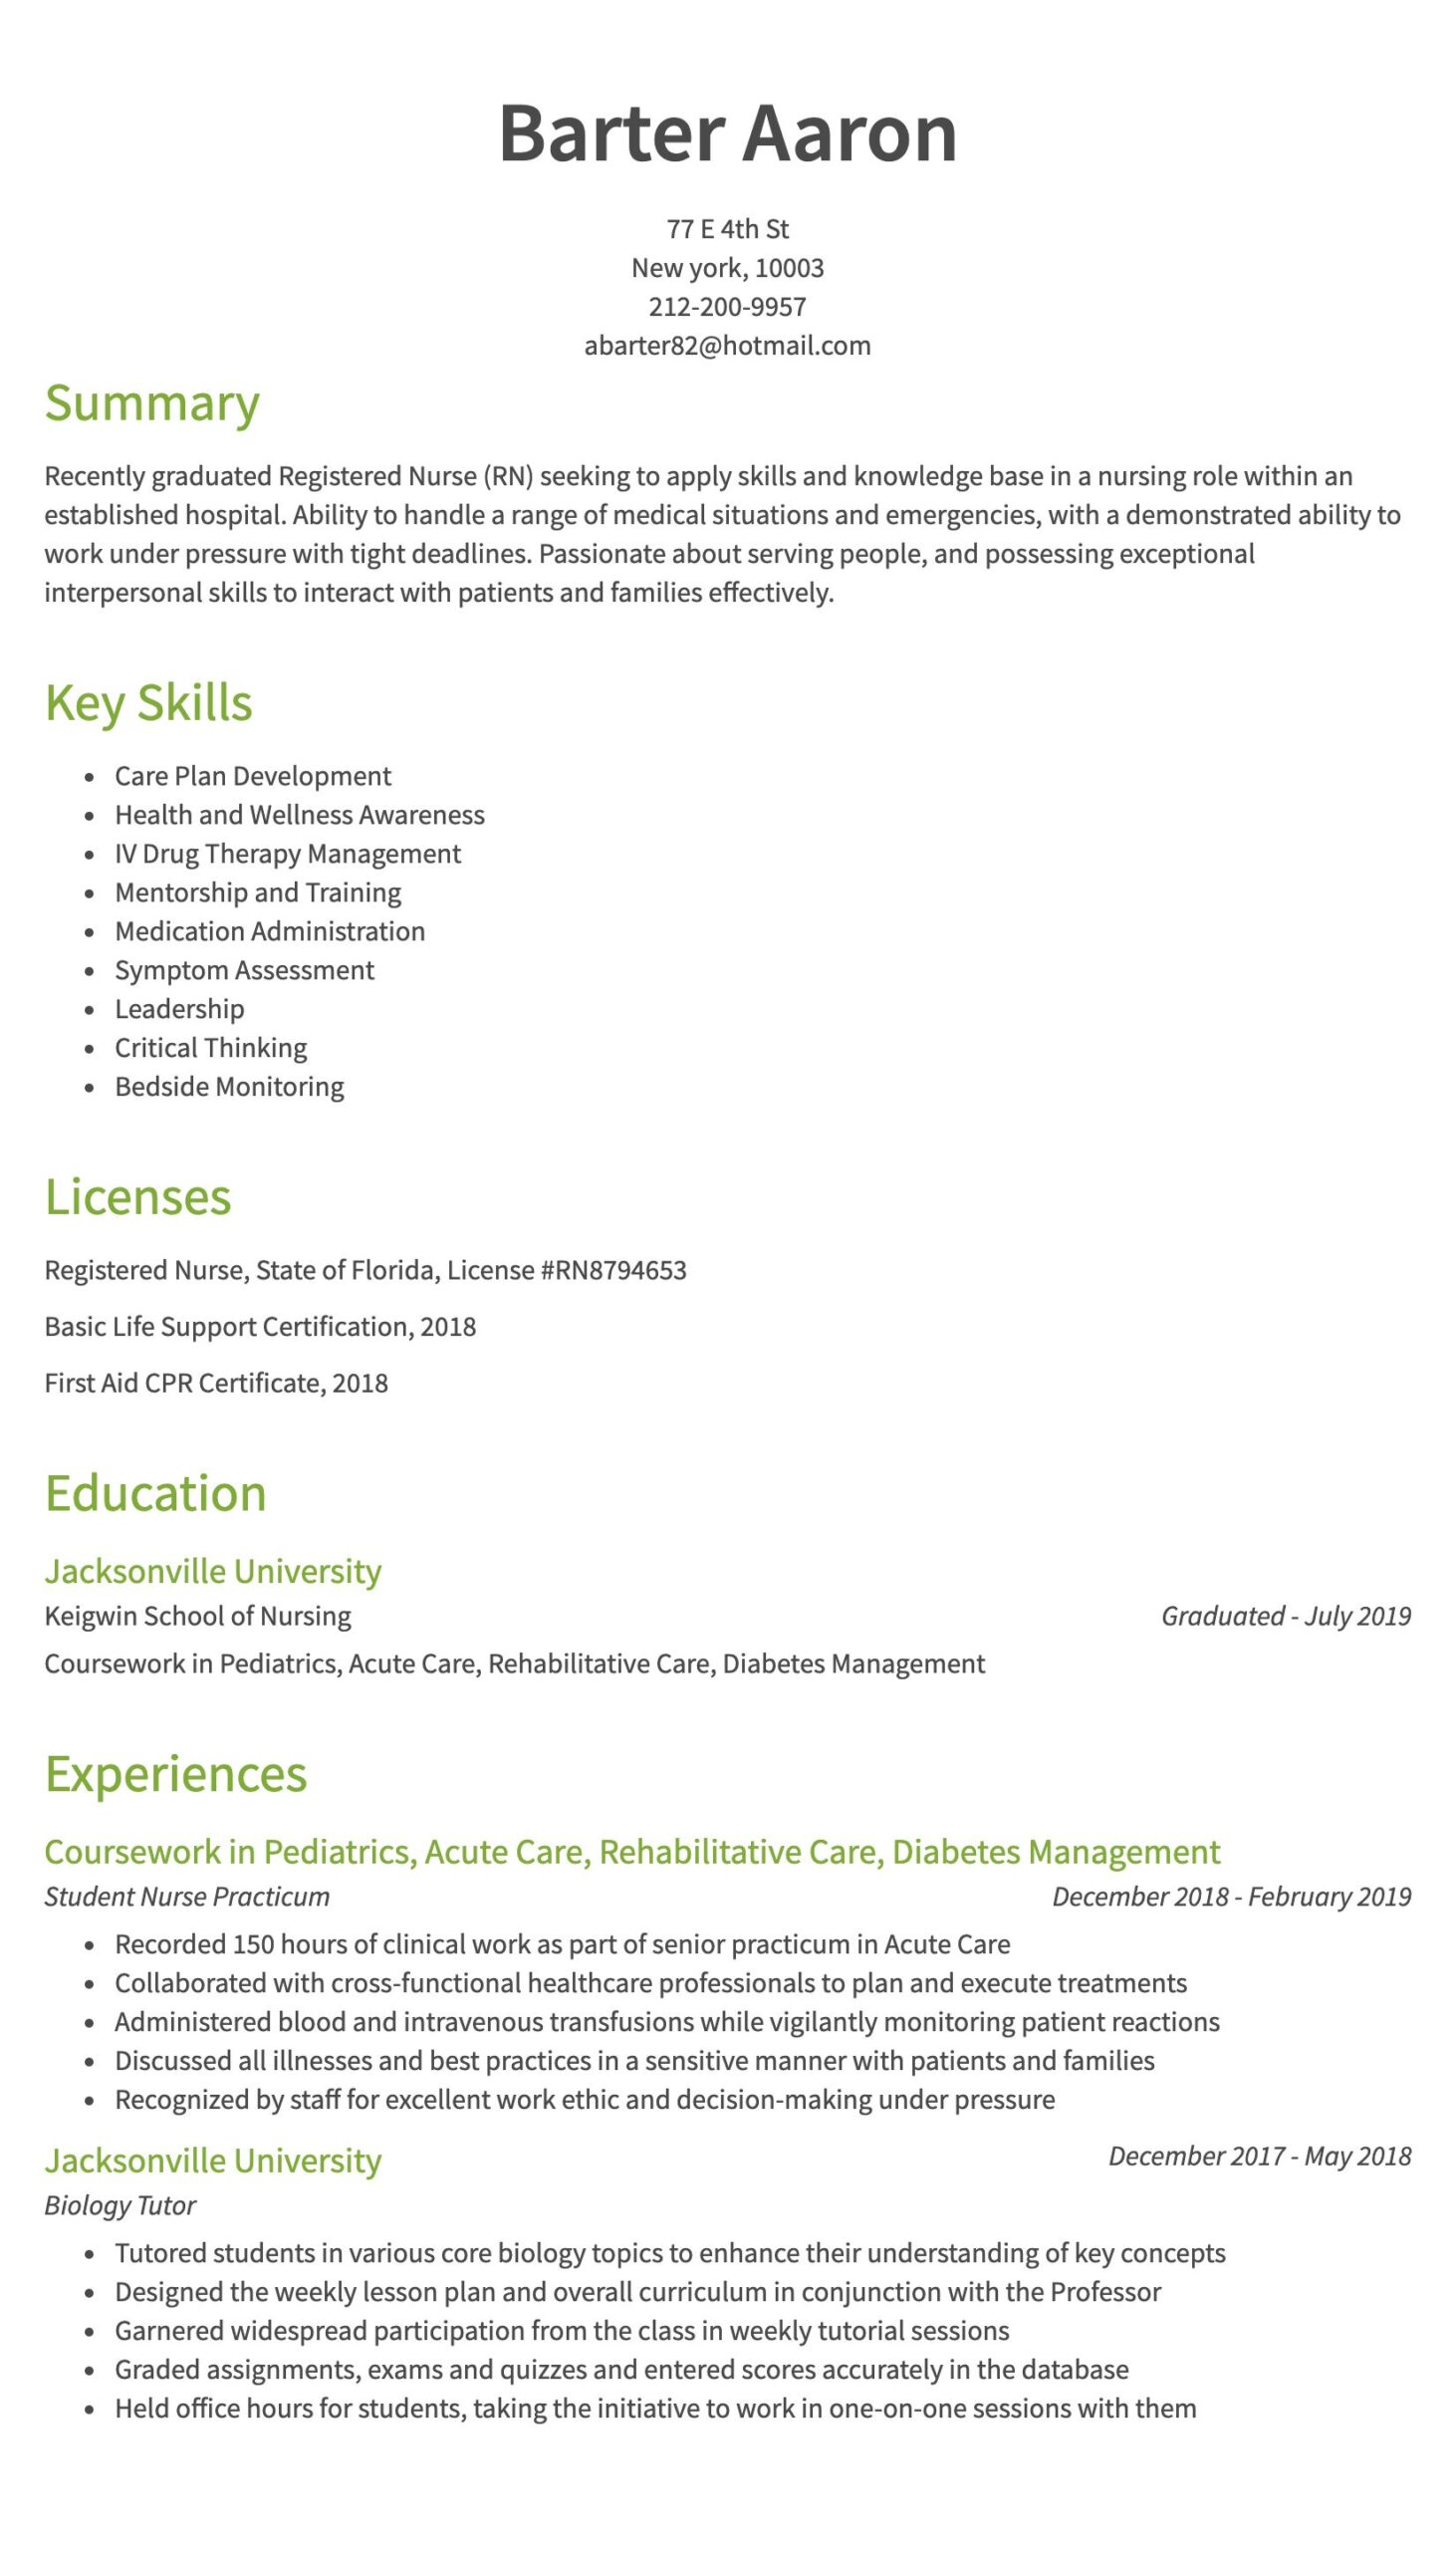 nursing resume examples samples written by rn managers qualifications years of exp skills Resume Nursing Resume Qualifications Examples